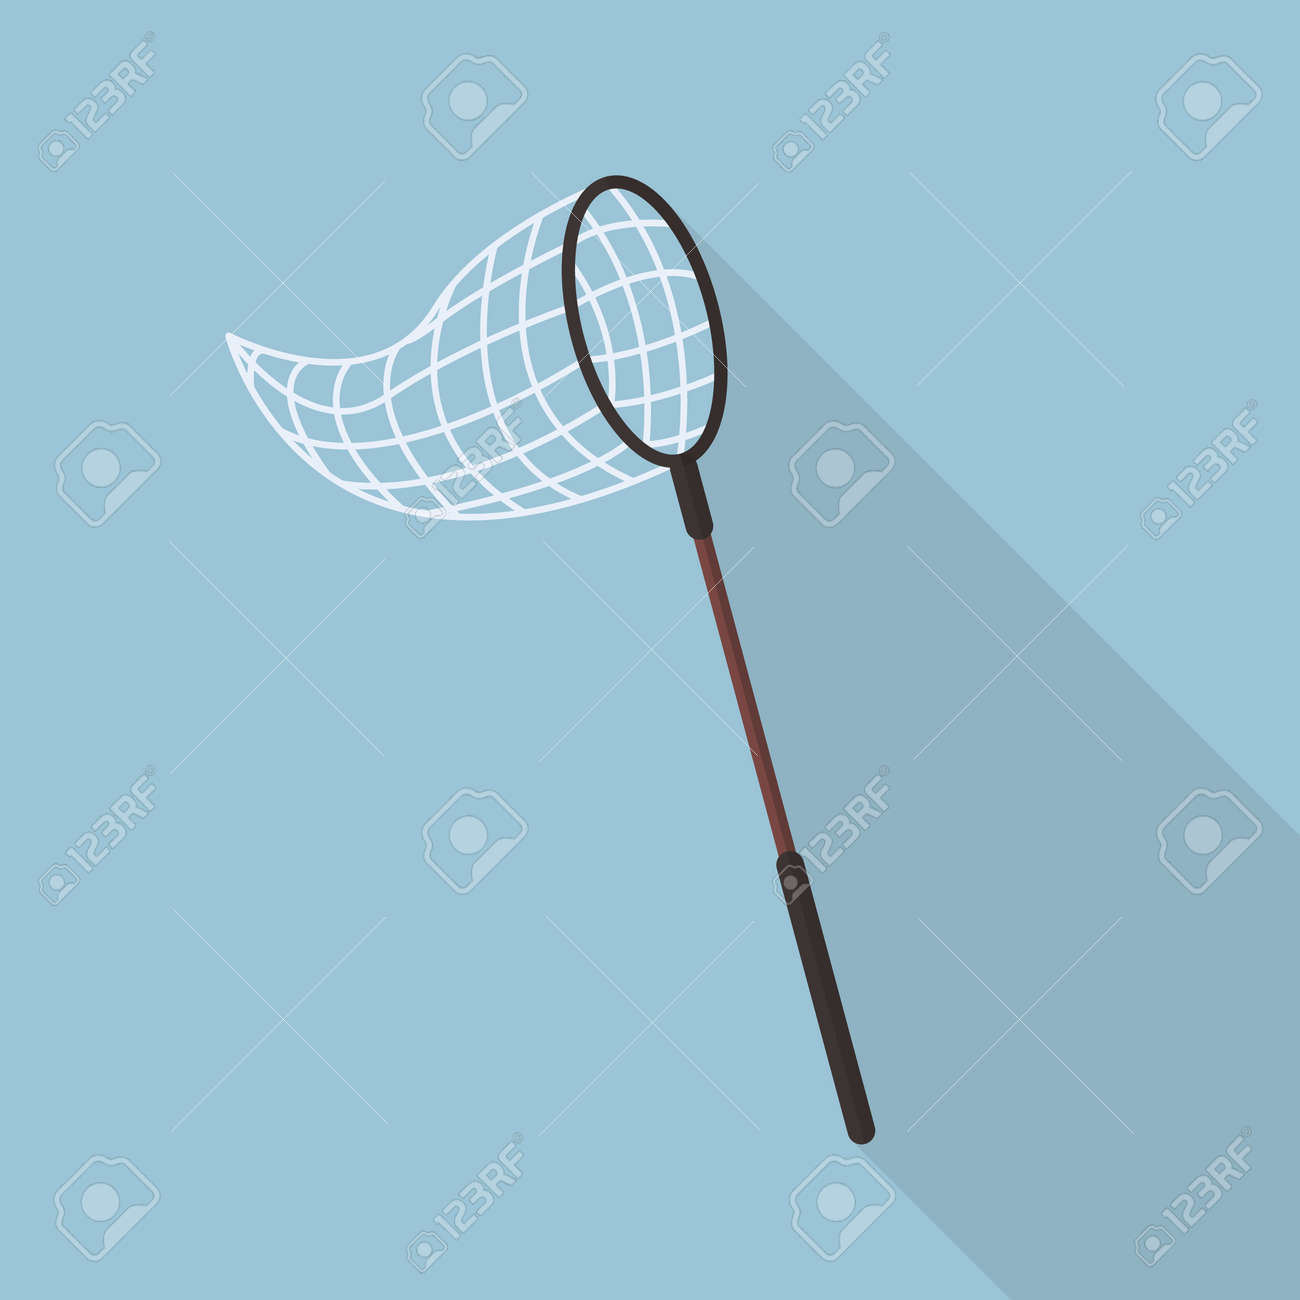 Butterfly net flat icon with long shadow - 51374901